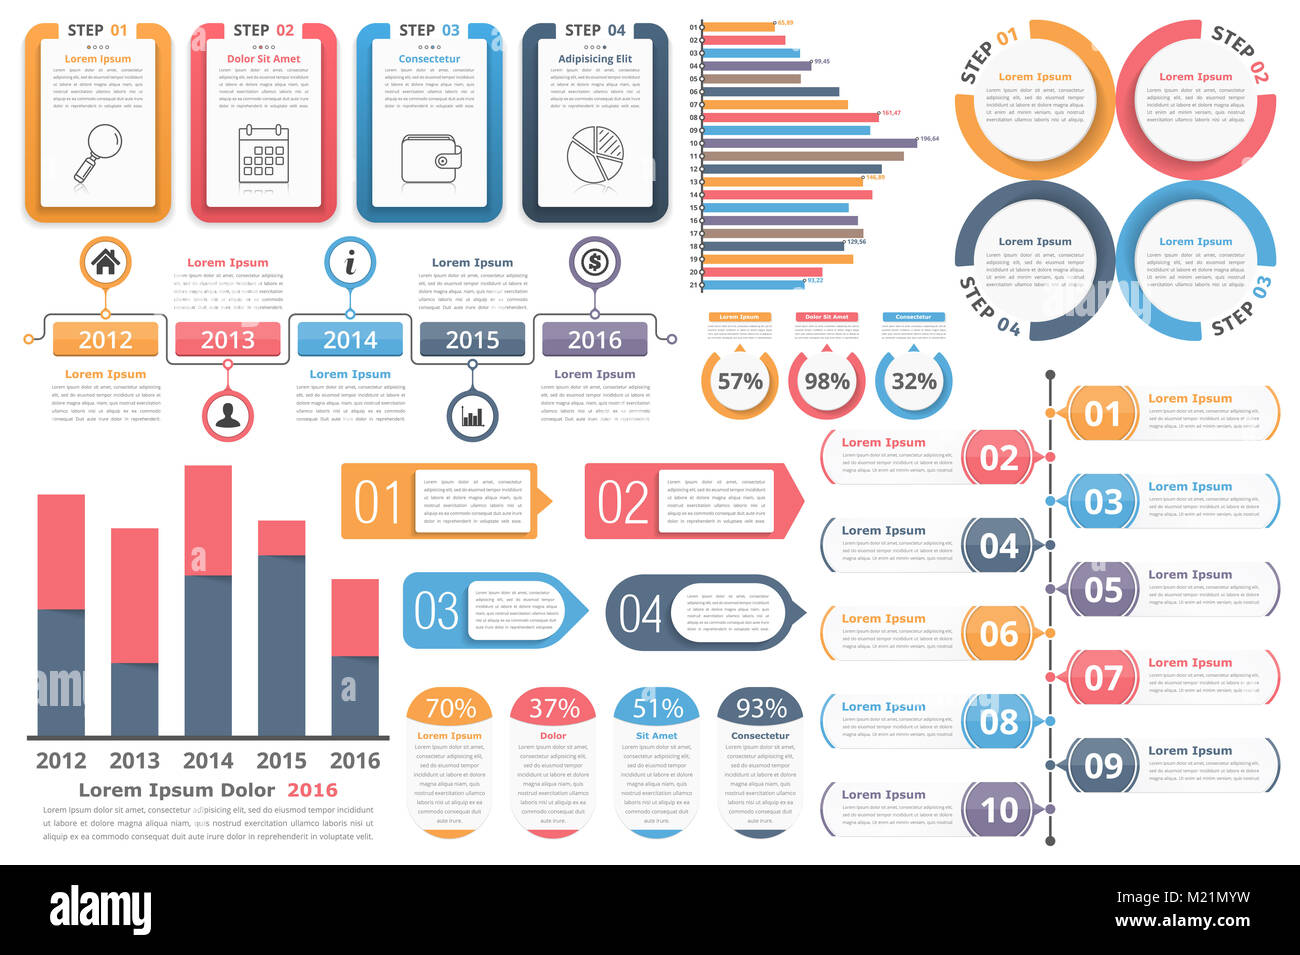 infographic elements objects with numbers and text bar graphs